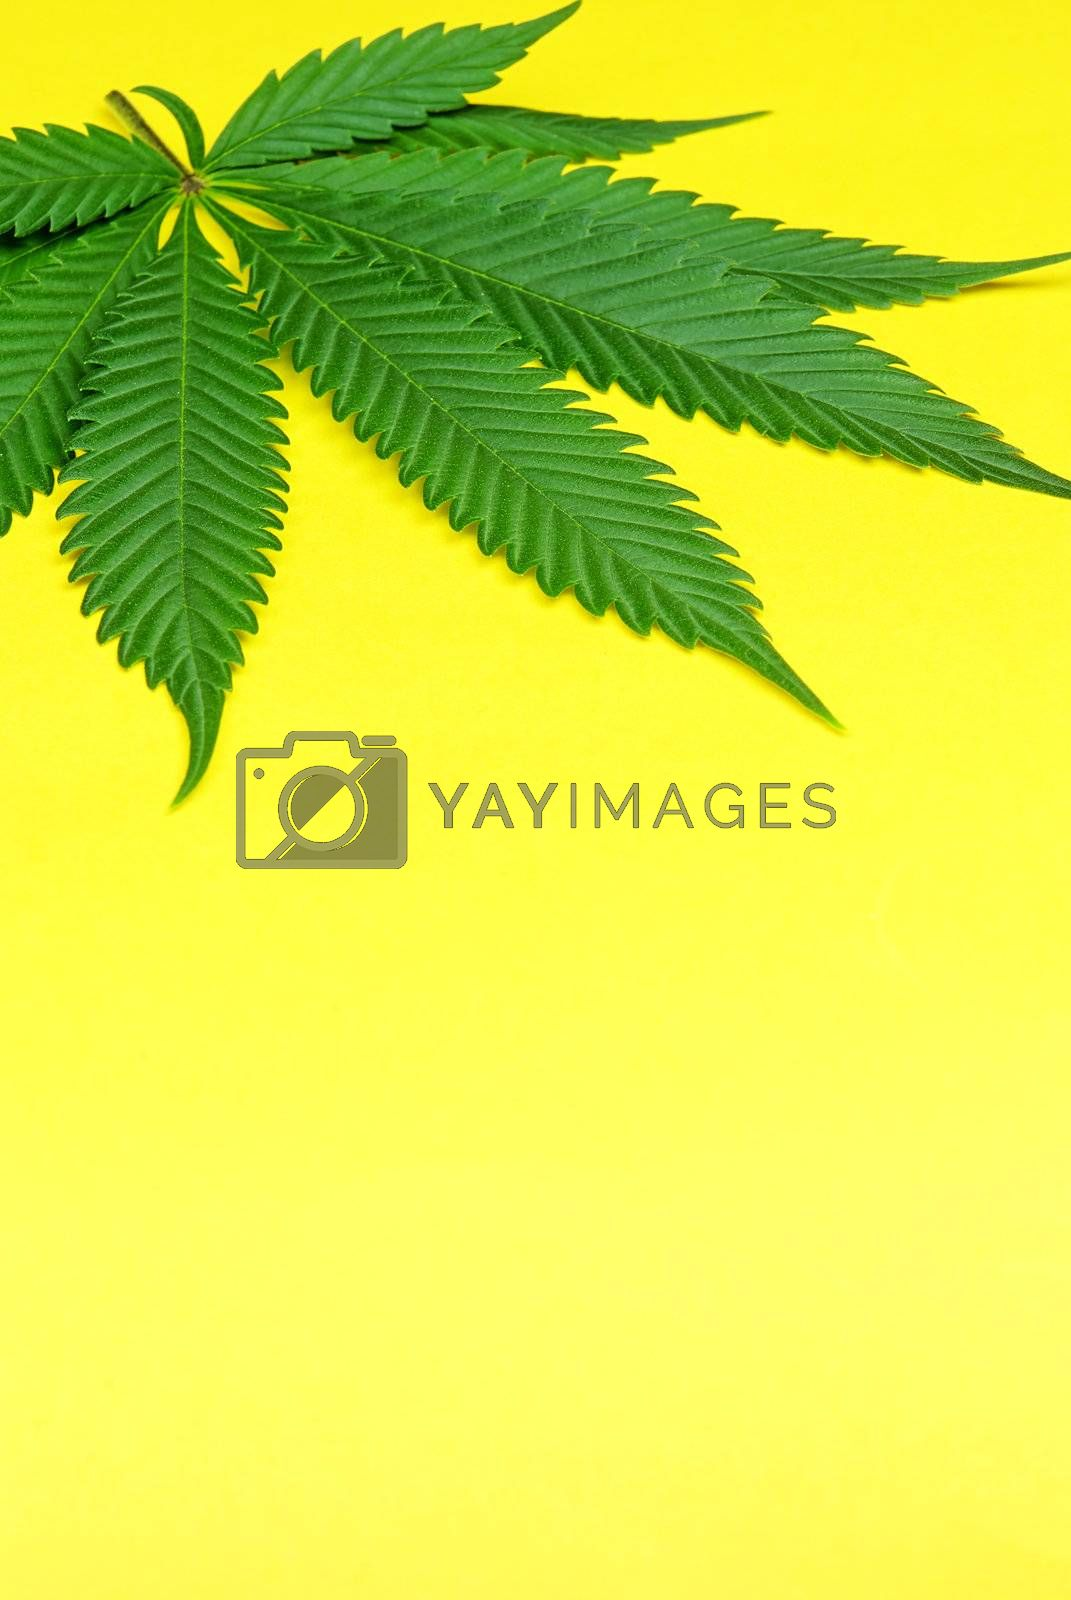 fresh Marijuana leaf photographed against yellow background